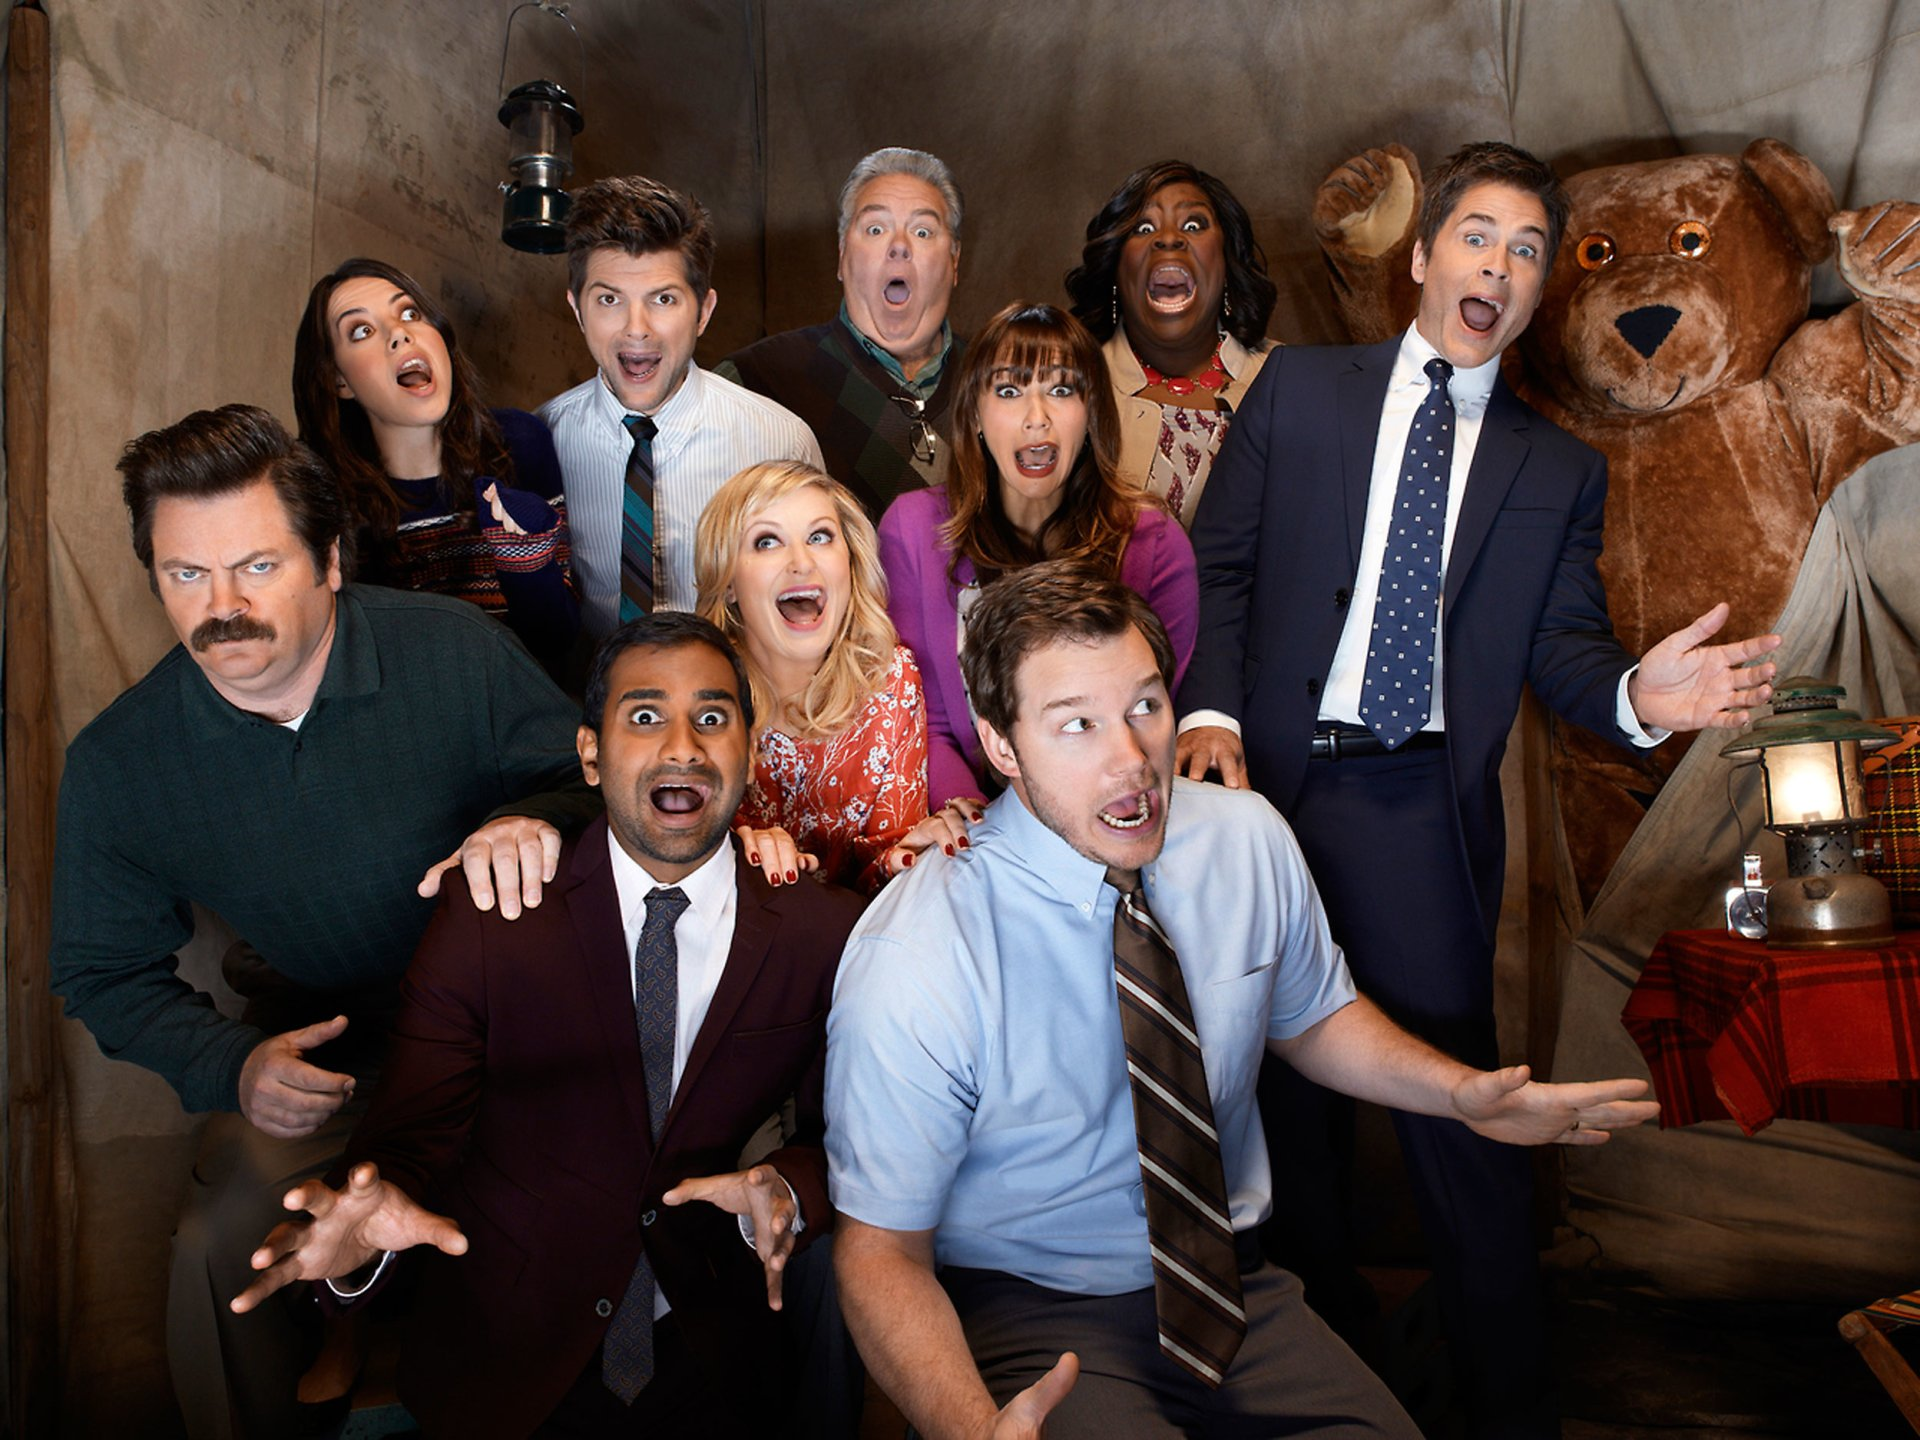 parks and recreation tv show wallpaper